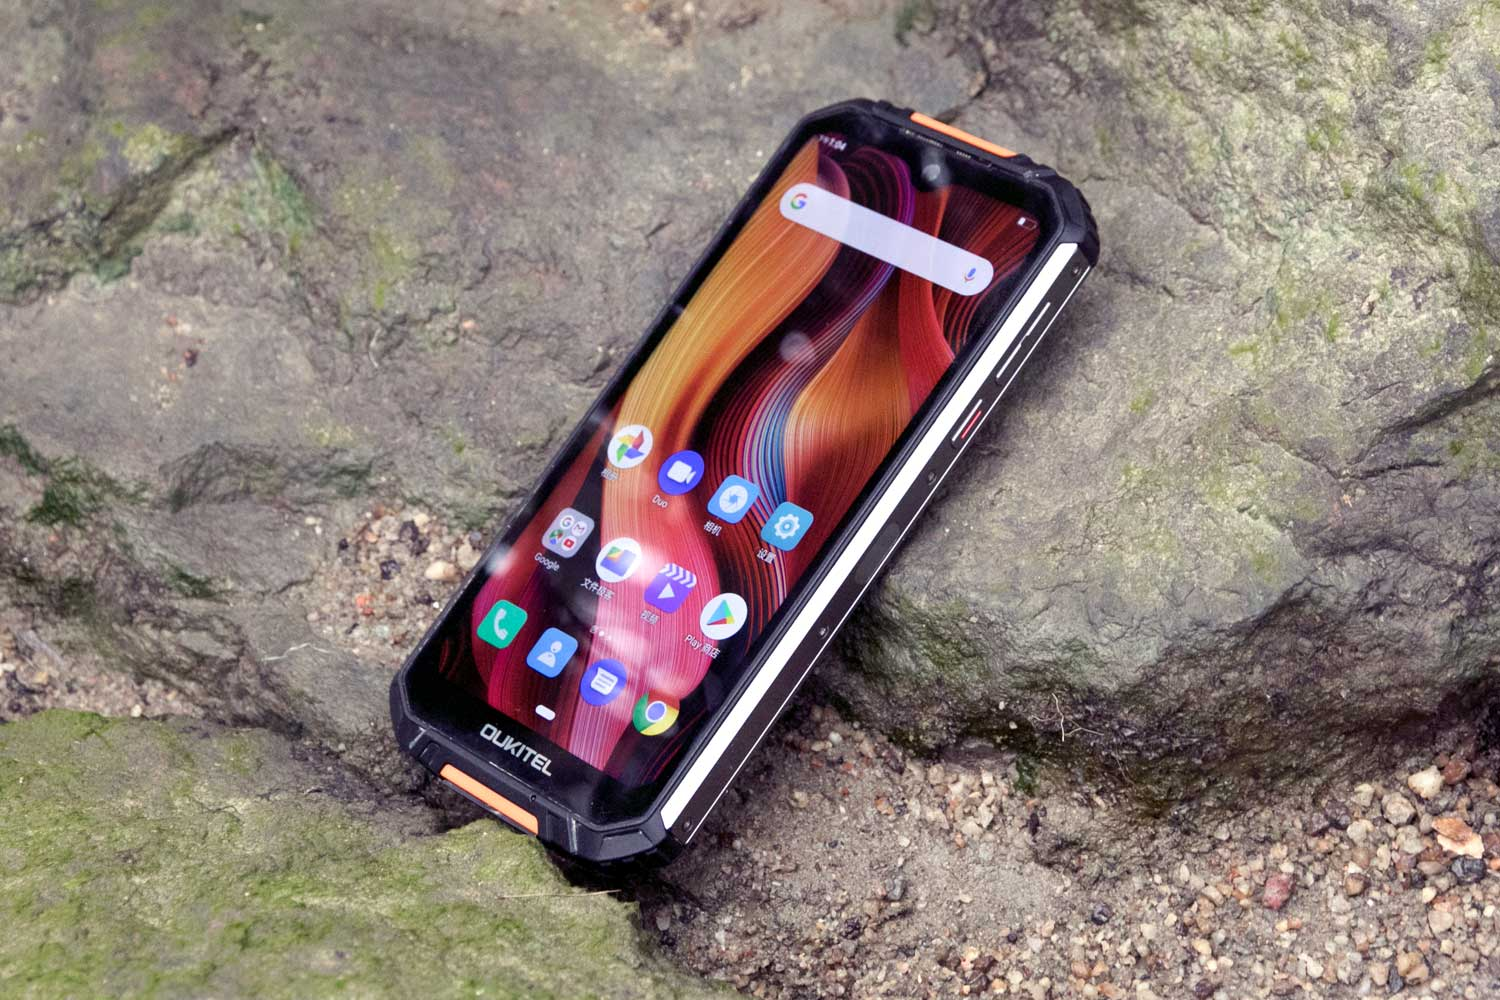 #OukitelWP6 combined with Corning glass and TPI into a ideal device going through all tough challenges.🤩